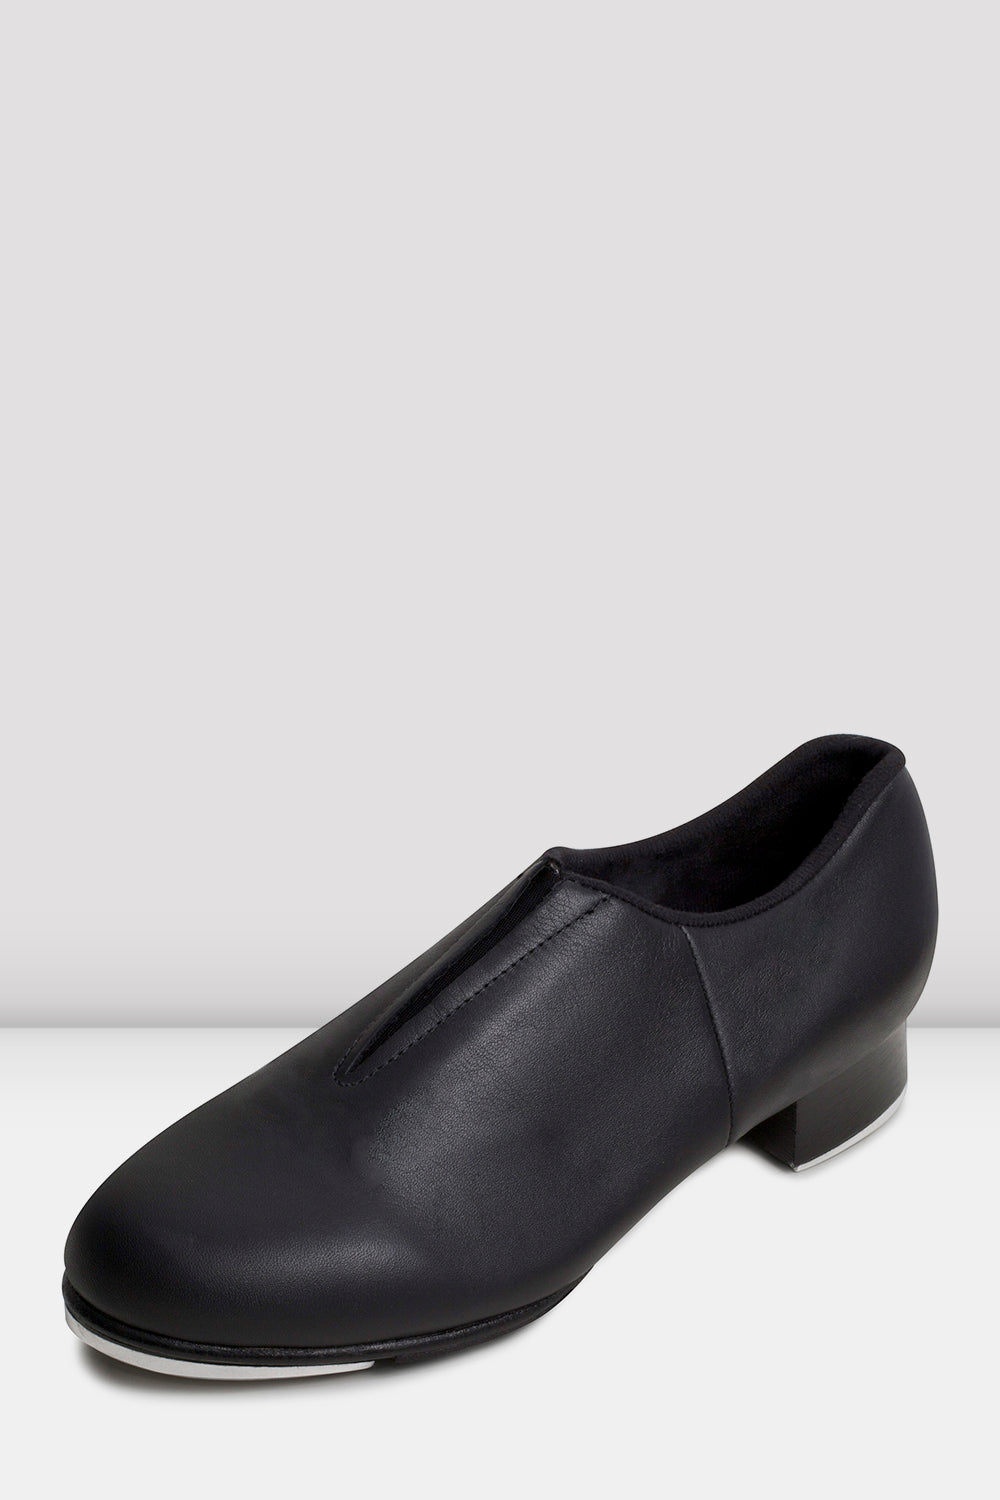 Ladies Tap Flex Slip On Leather Tap Shoes - BLOCH US